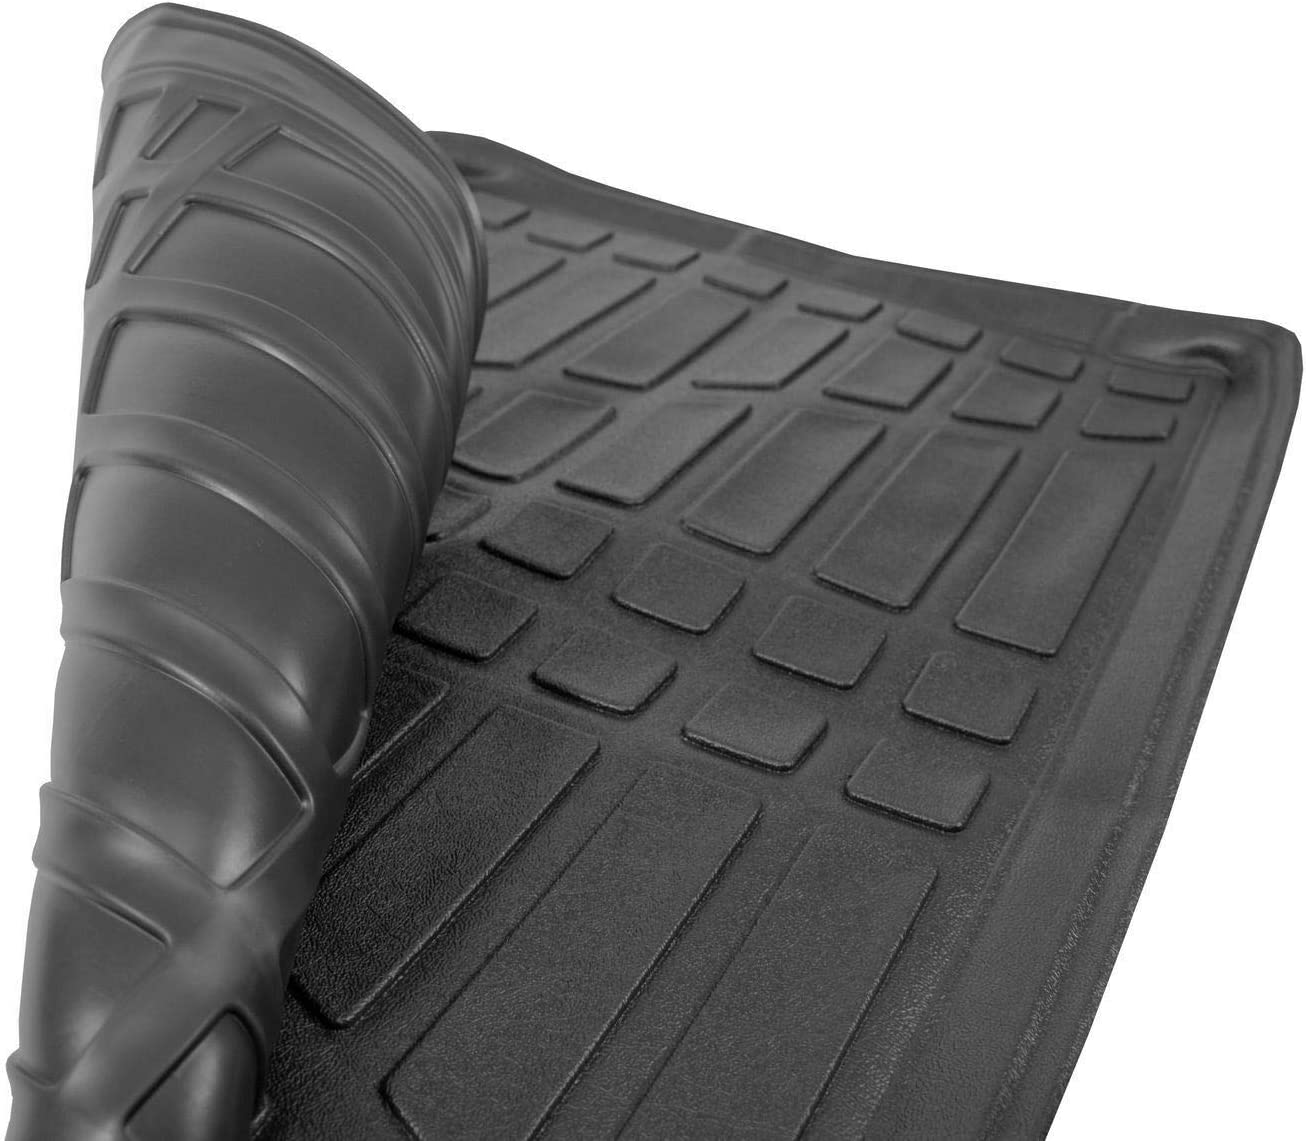 UKB4C Heavy Duty Tailored Fit Boot Liner Tray Car Mat Fits 3 Series F31 Combi 2011-up